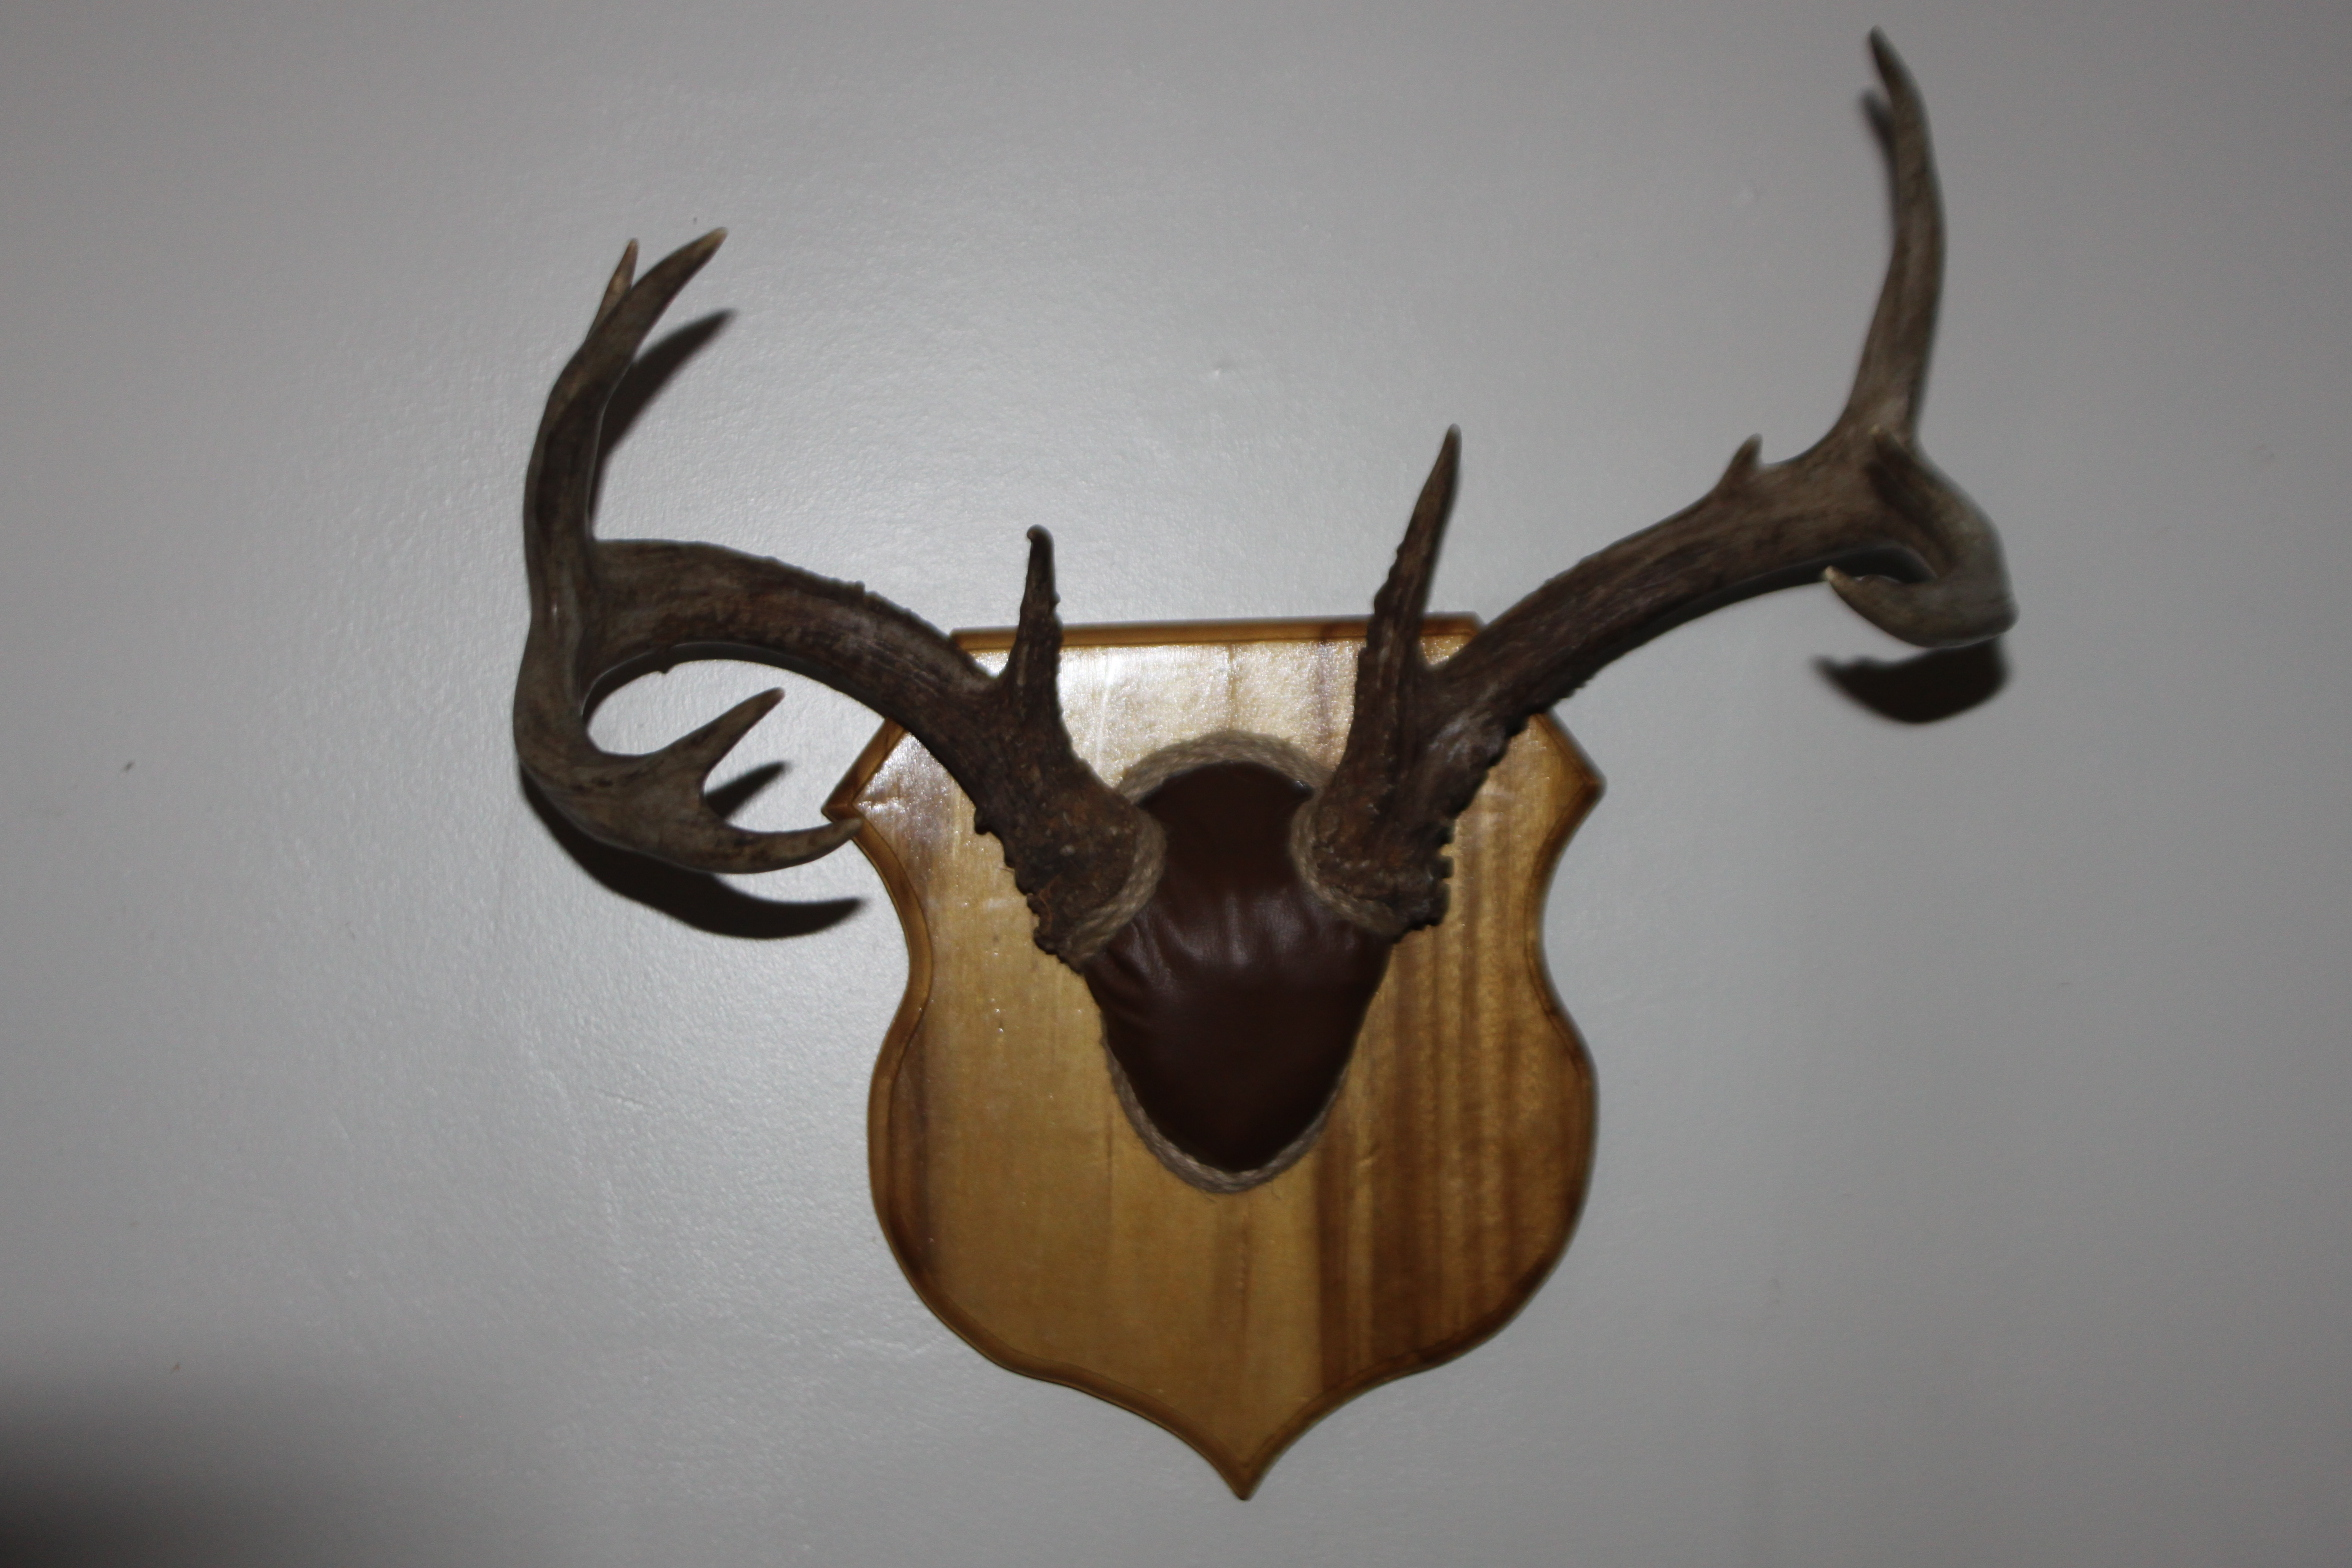 Another way to mount your trophies!